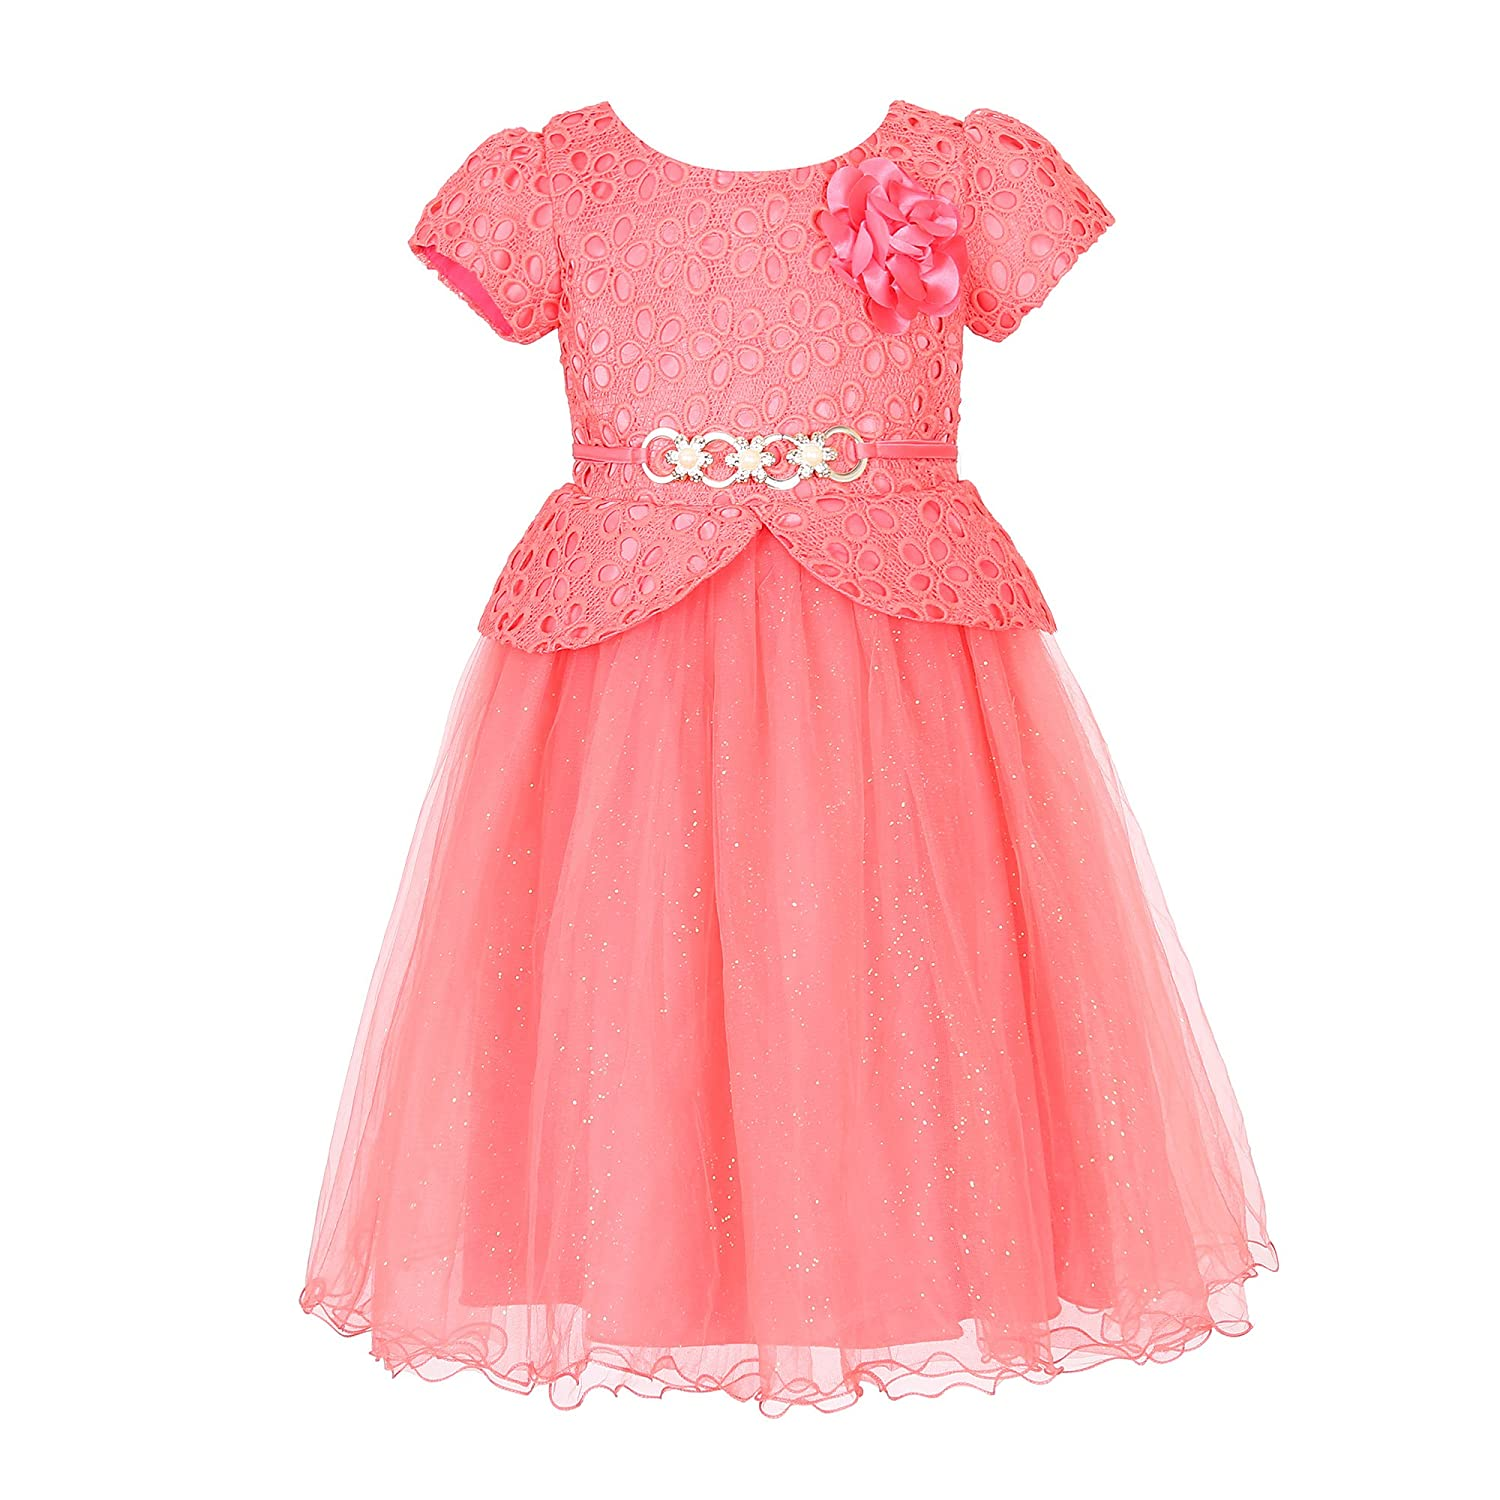 Richie House Girls' Princess Party Dress with Belt Size 3-8Y RH2598